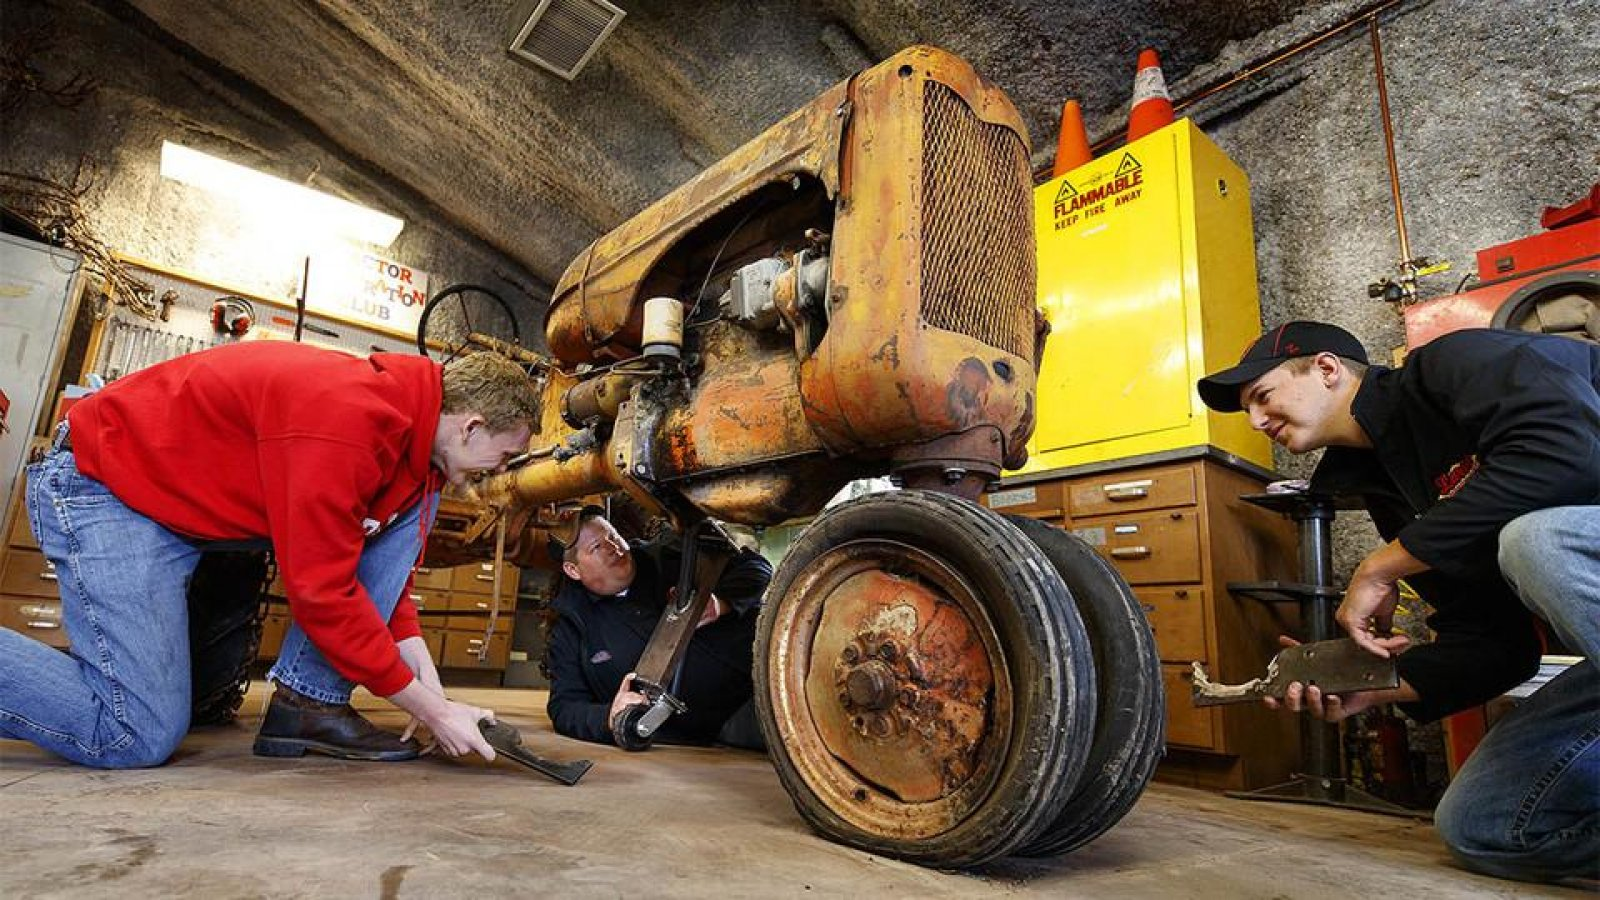 Tractor Restoration Club members work to prepare a 1945 Allis Chalmers Model C for display at the Homestead National Monument near Beatrice. (Photo by Craig Chandler / University Communication)